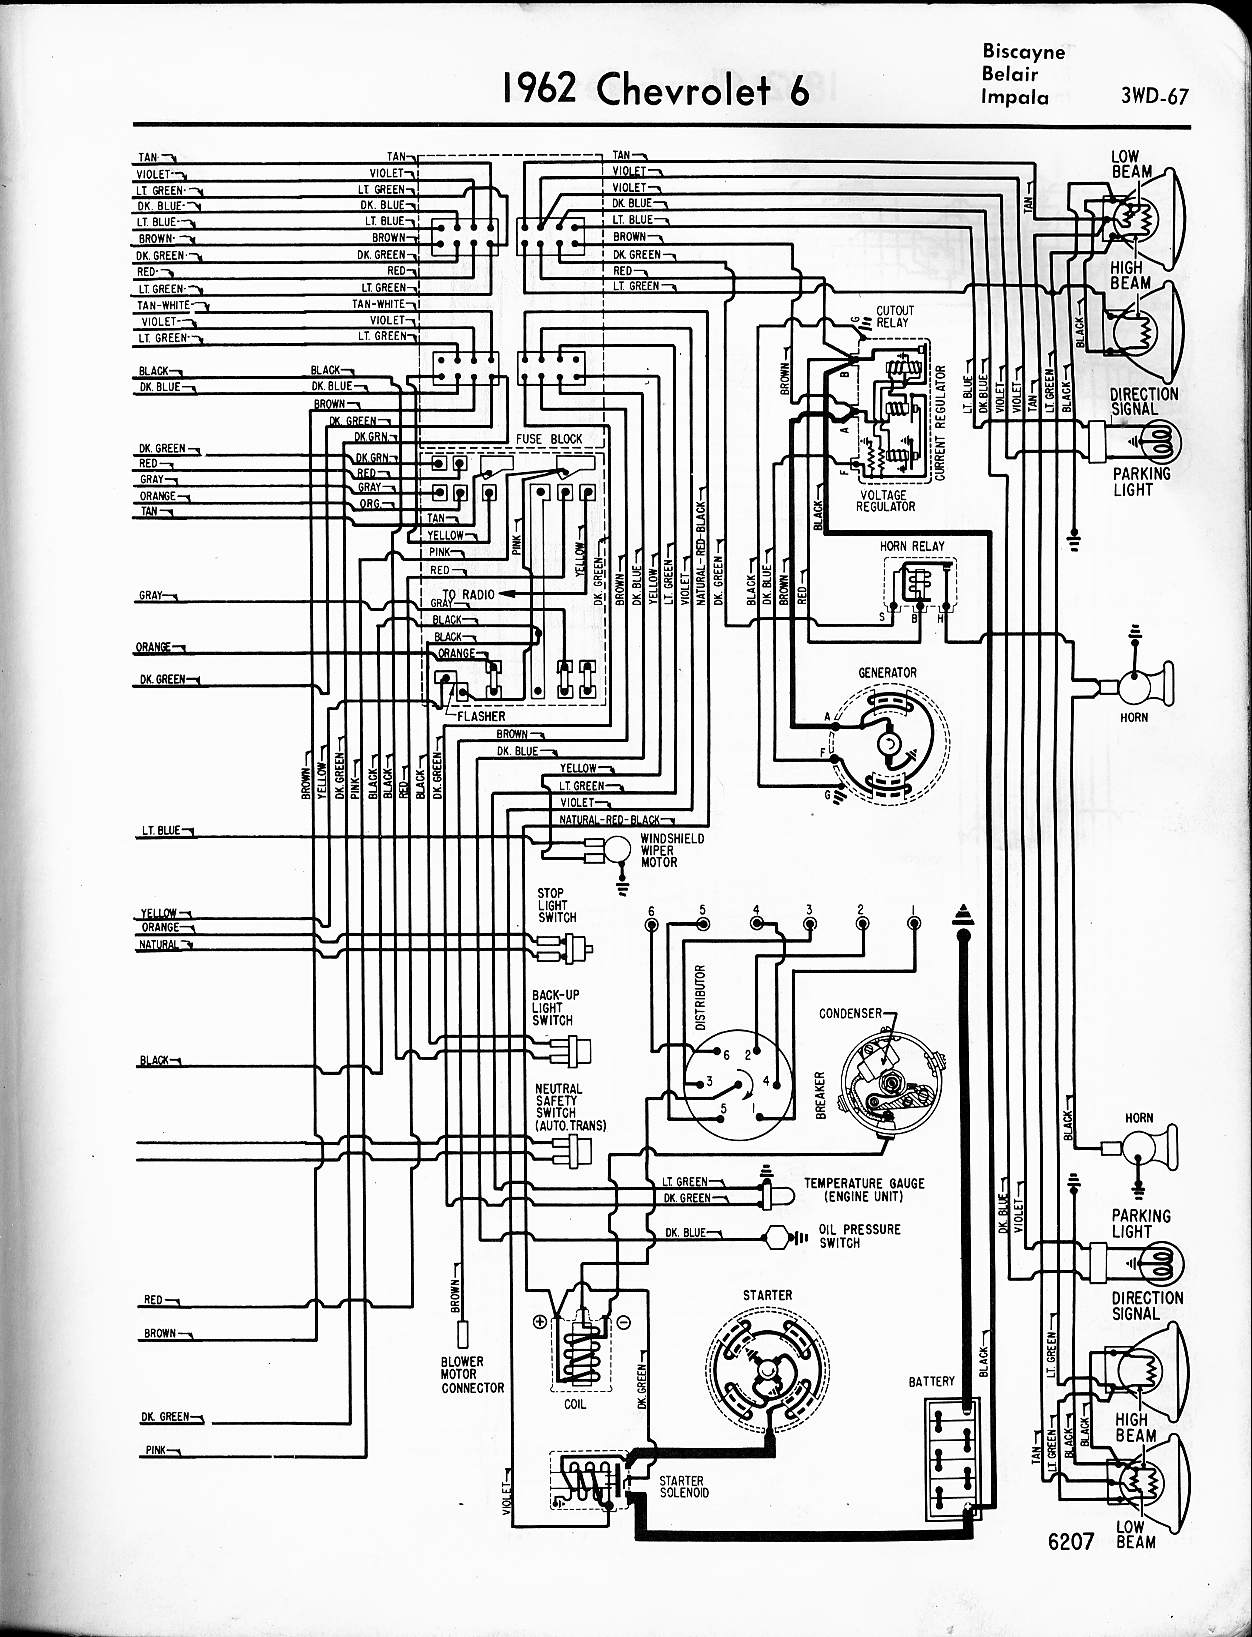 MWireChev62_3WD 067 57 65 chevy wiring diagrams 1962 impala wiring diagram at honlapkeszites.co